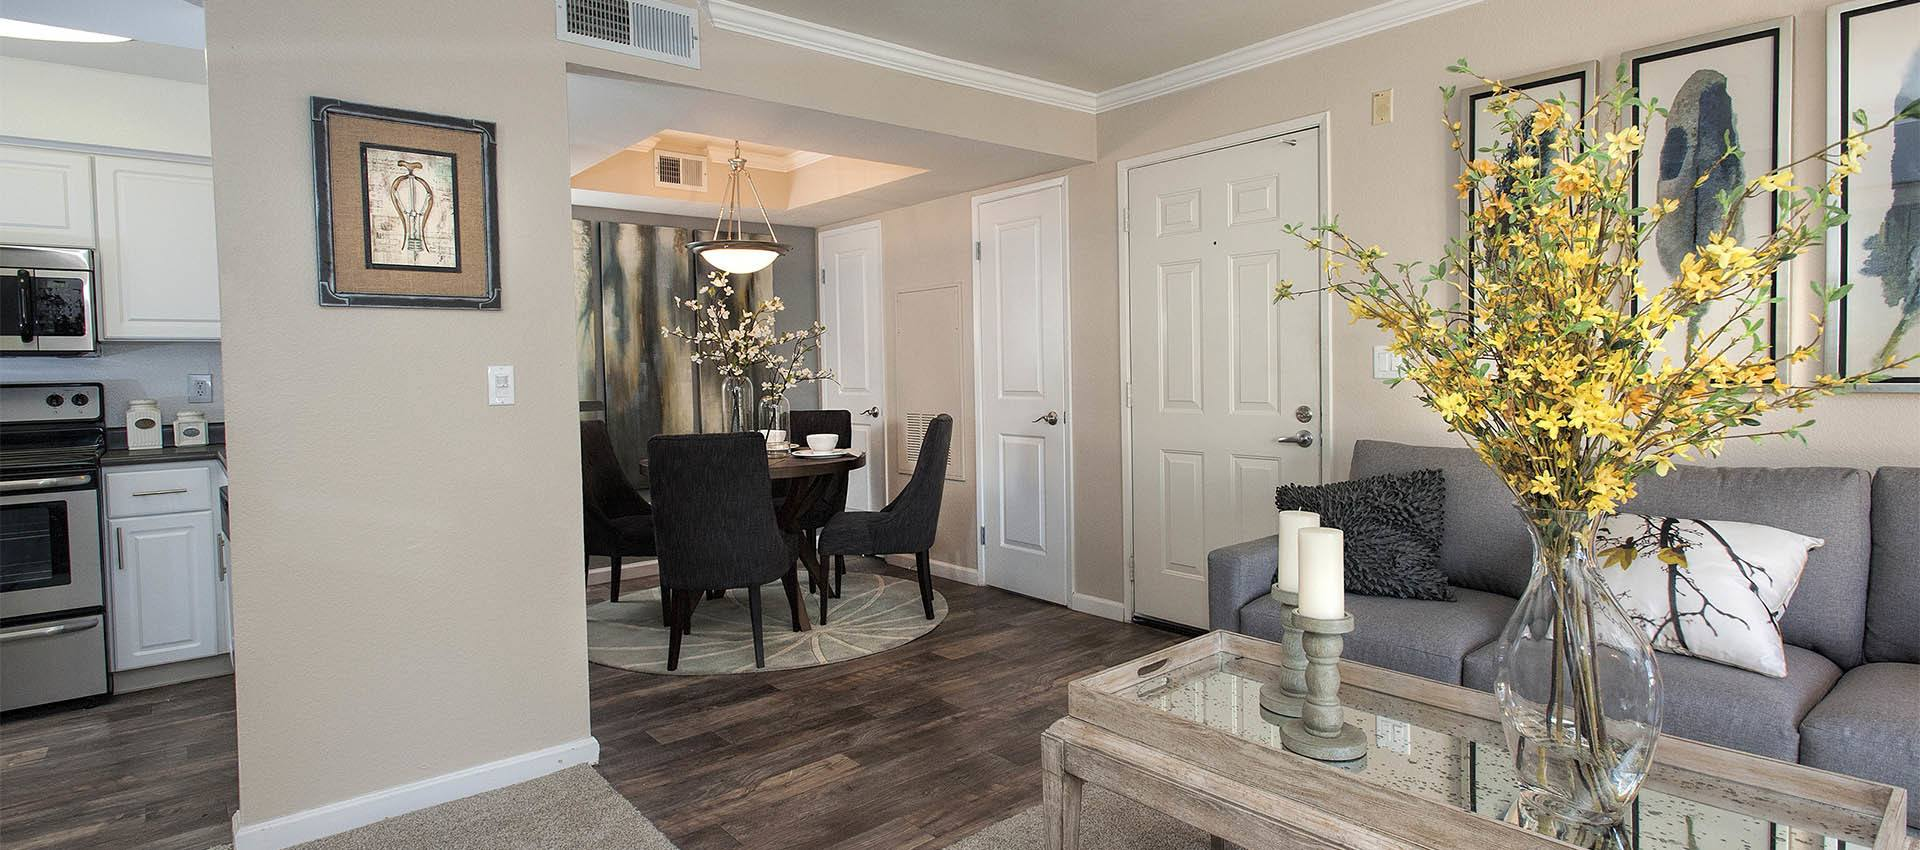 Luxury Floorplans Available at Mill Springs Park Apartment Homes in Livermore